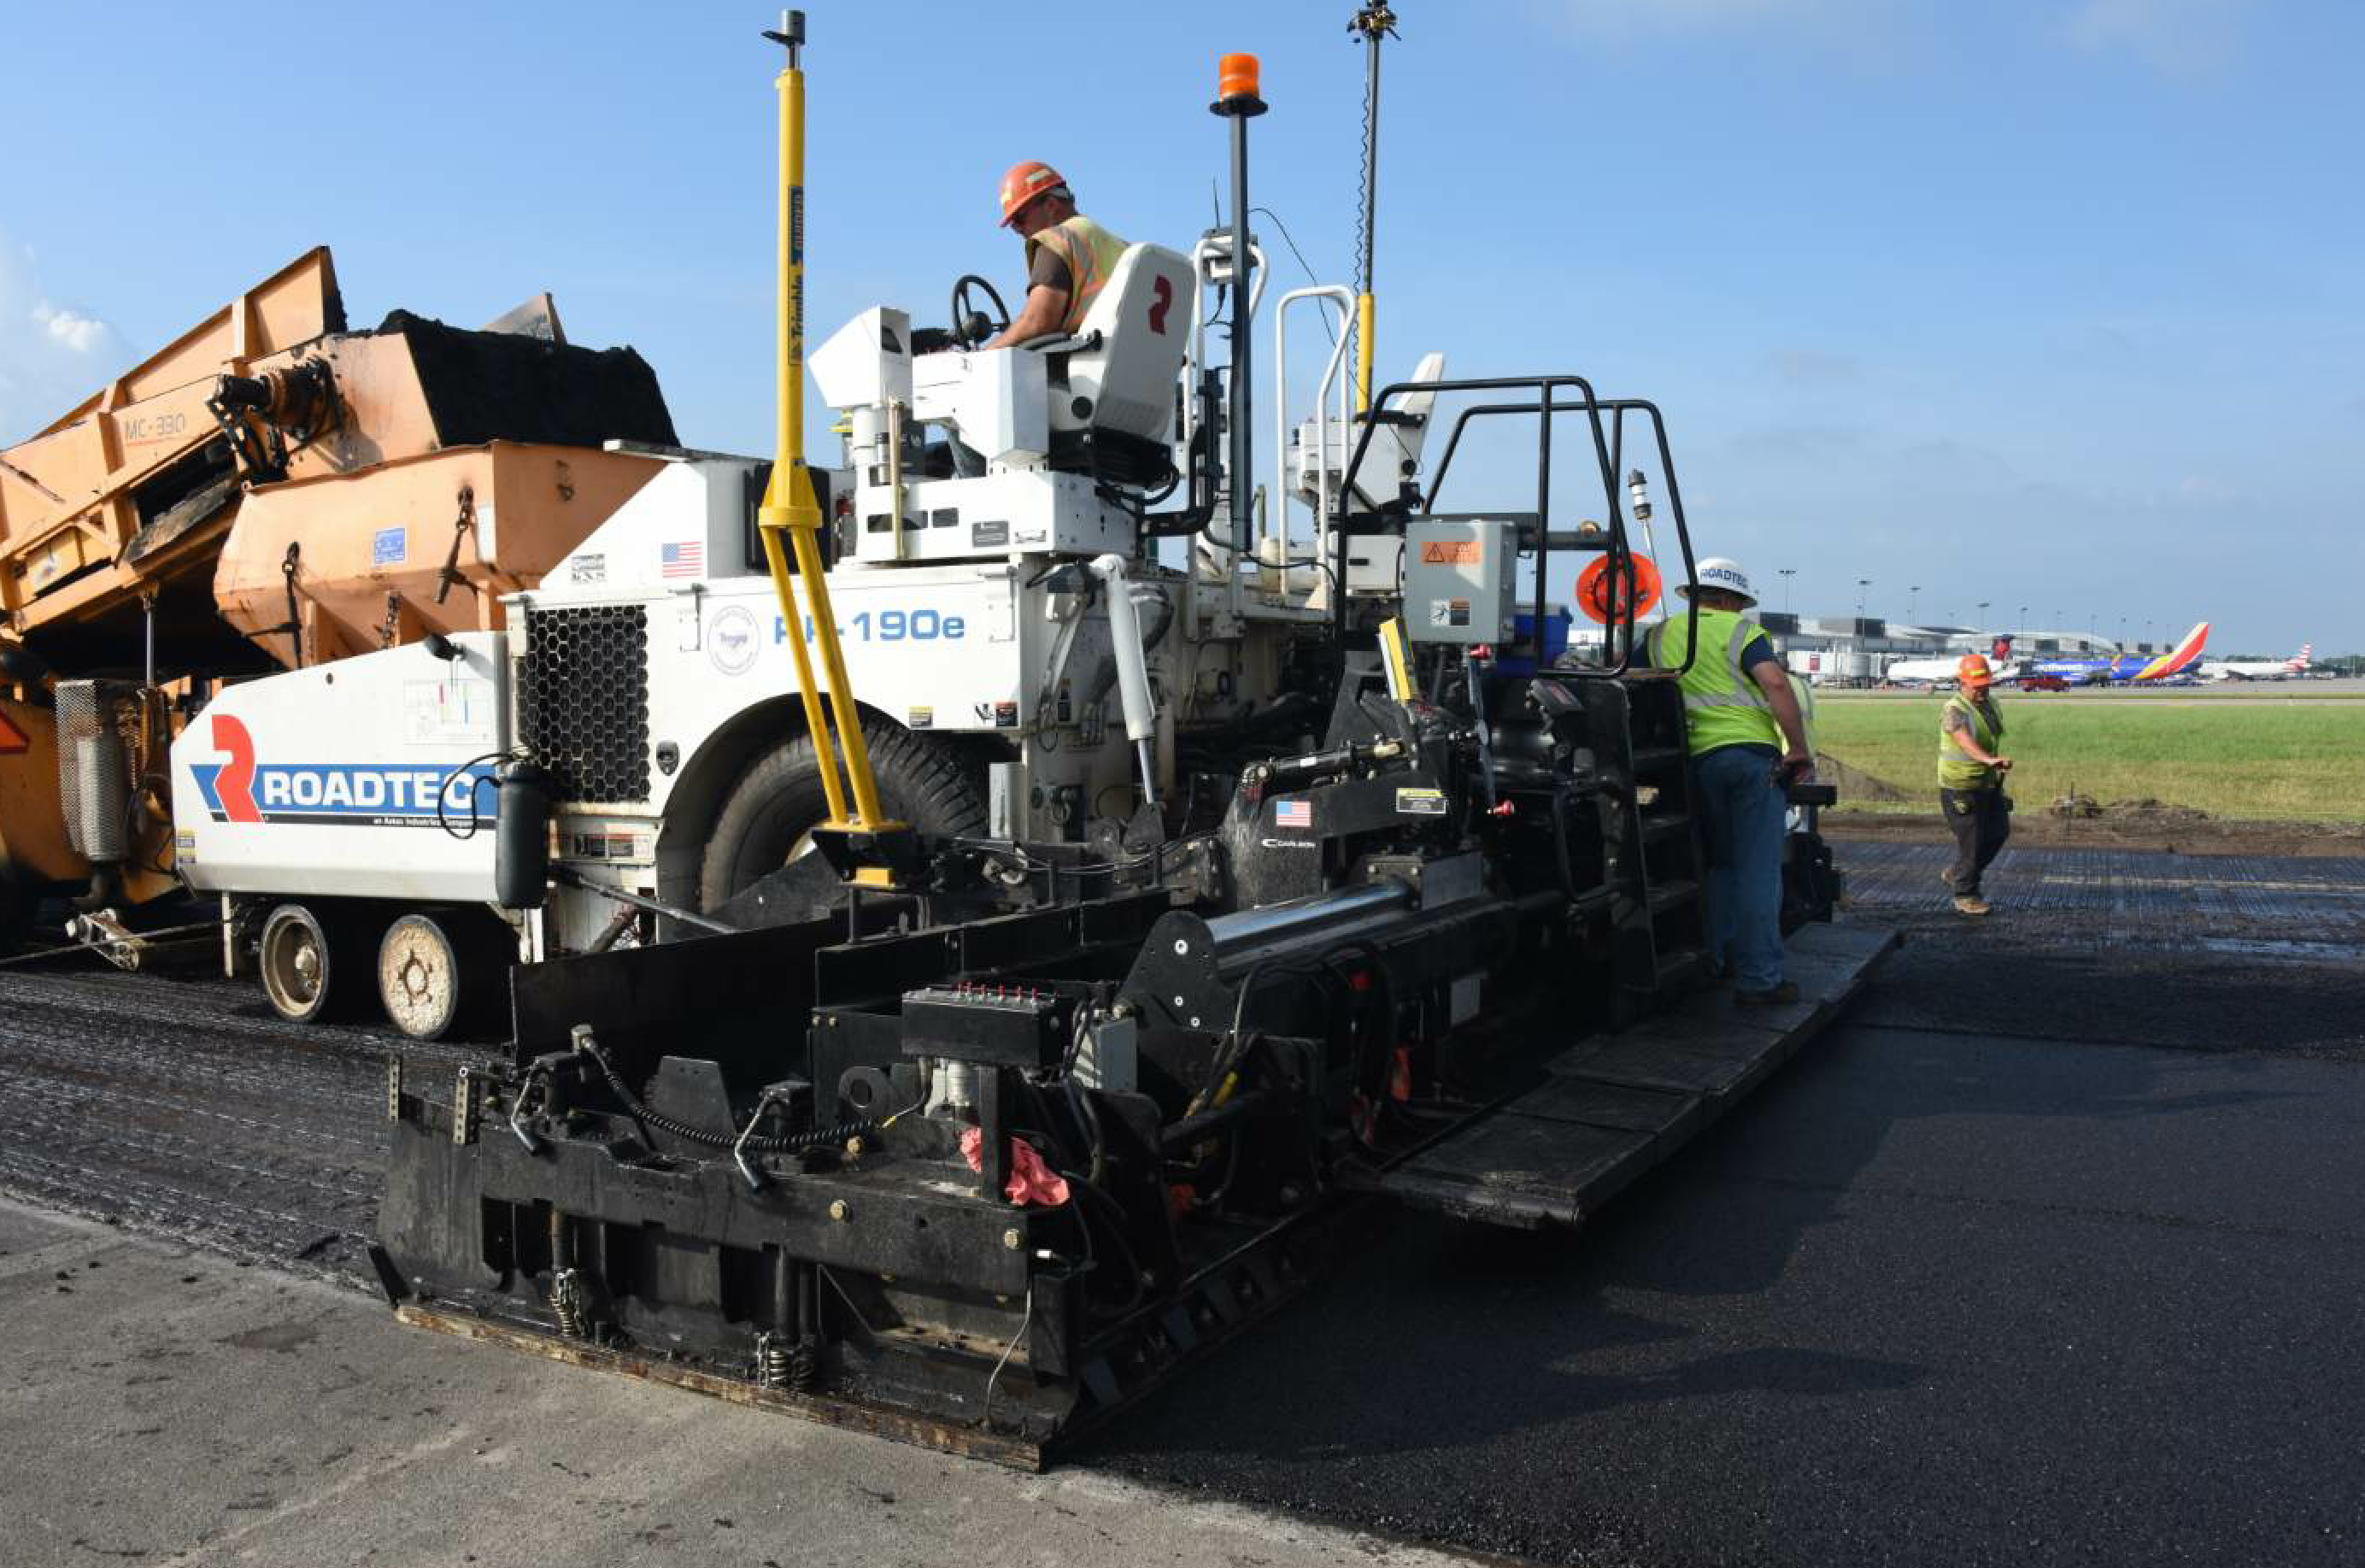 The Buffalo Niagara International Airport for the City of Buffalo, New York, received a new surface course for the entire runway, which measures 5,412 by 150 feet.